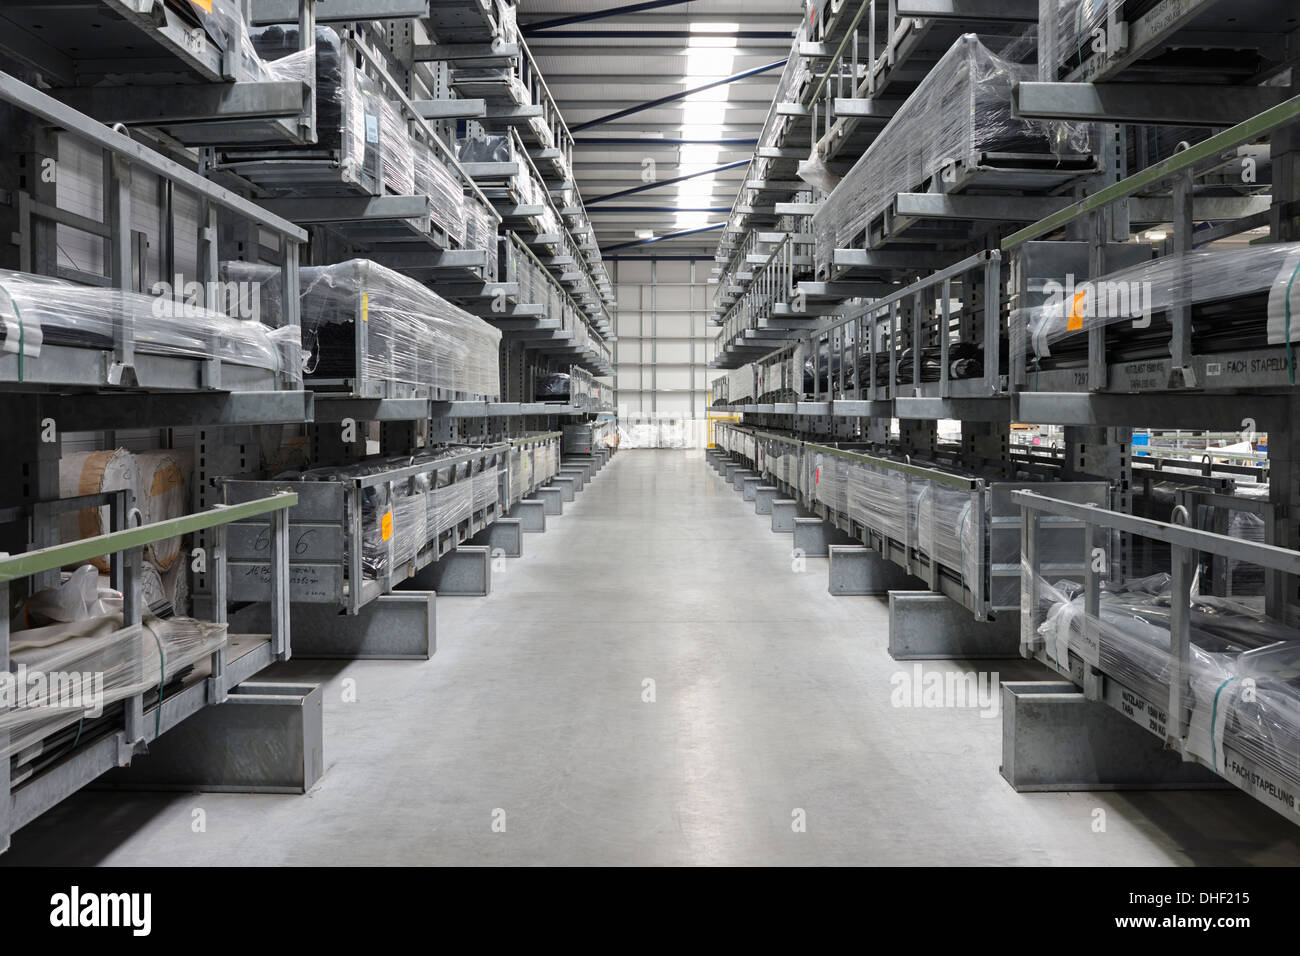 Products aisle in engineering warehouse - Stock Image